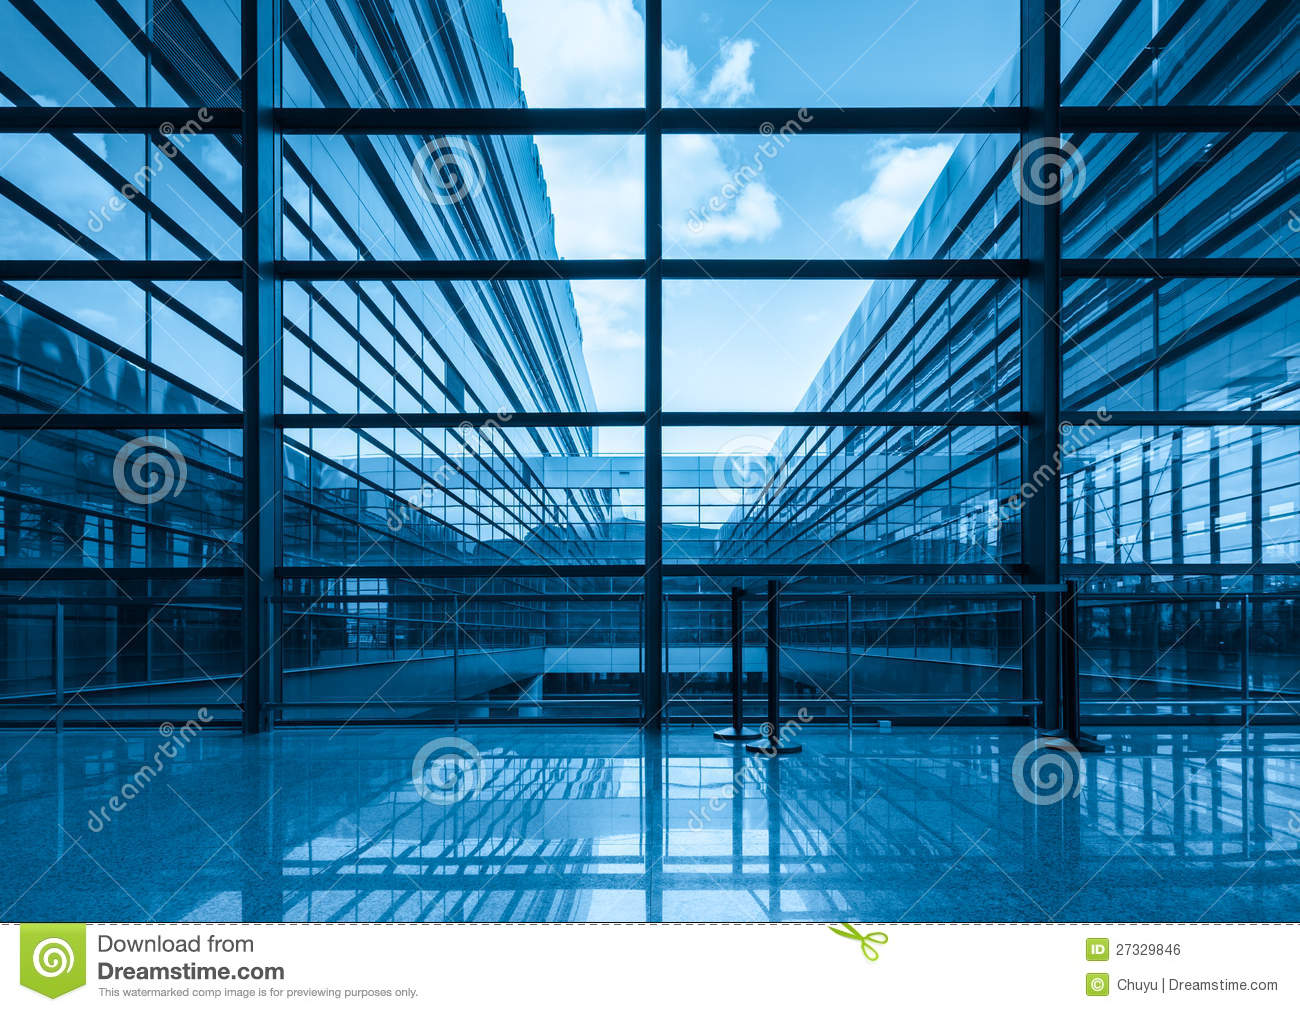 Glass curtain wall - Blue Glass Curtain Wall And Window Royalty Free Stock Image